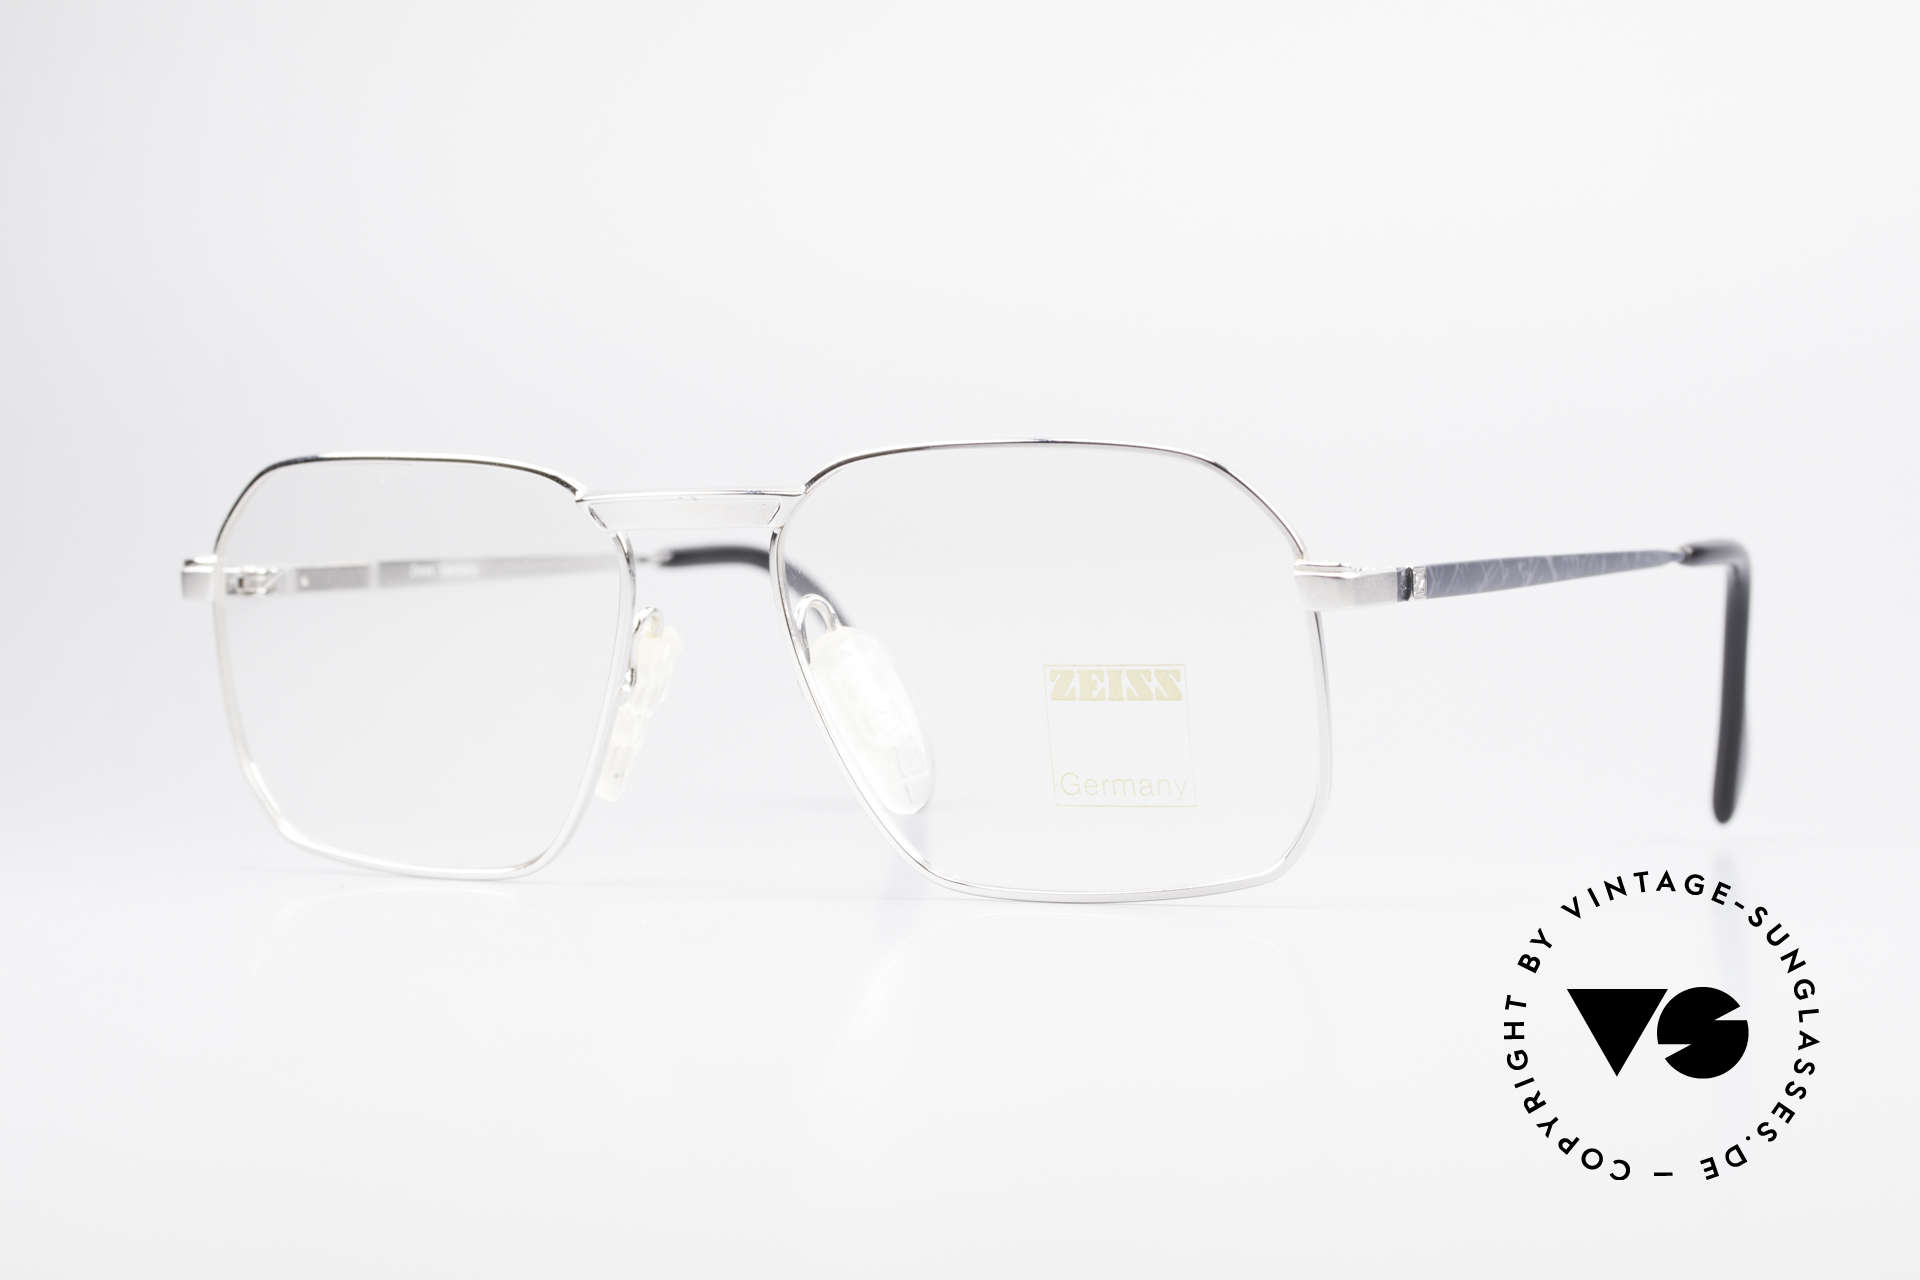 Zeiss 5922 Rare Old 90's Eyeglasses Men, sturdy vintage eyeglass-frame by Zeiss from app. 1990, Made for Men